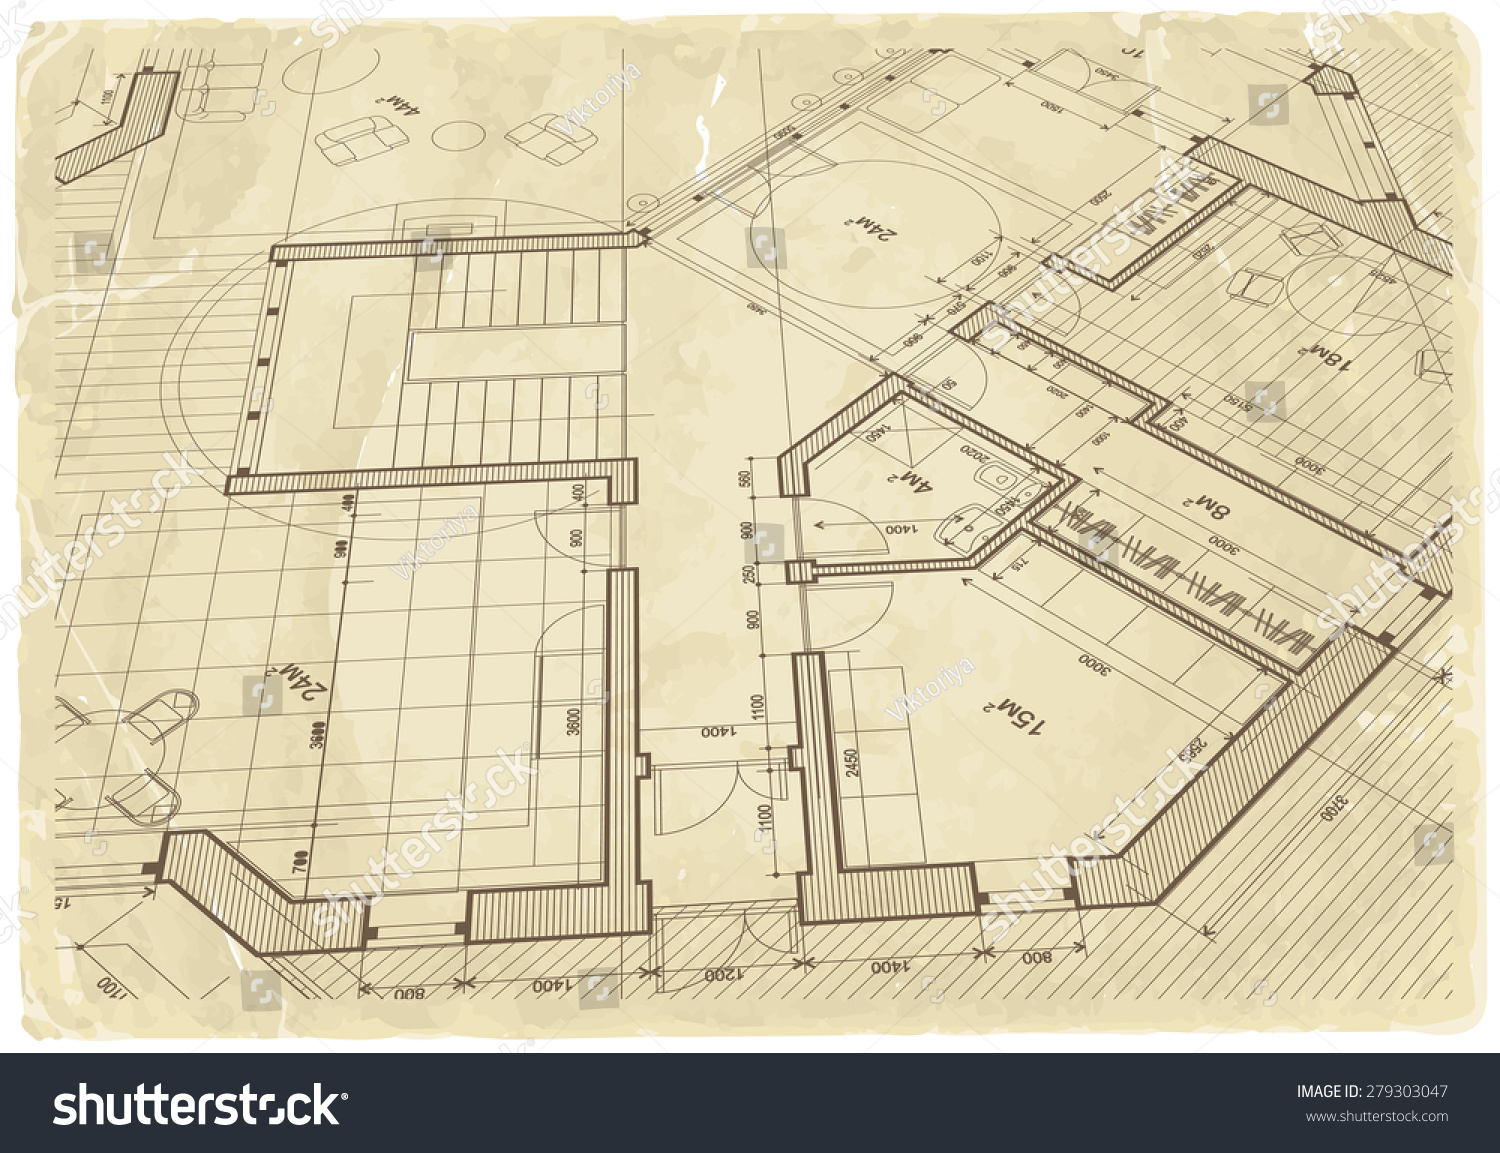 Architecture blueprint house plan old paper stock illustration architecture blueprint house plan old paper stock illustration 279303047 shutterstock malvernweather Image collections